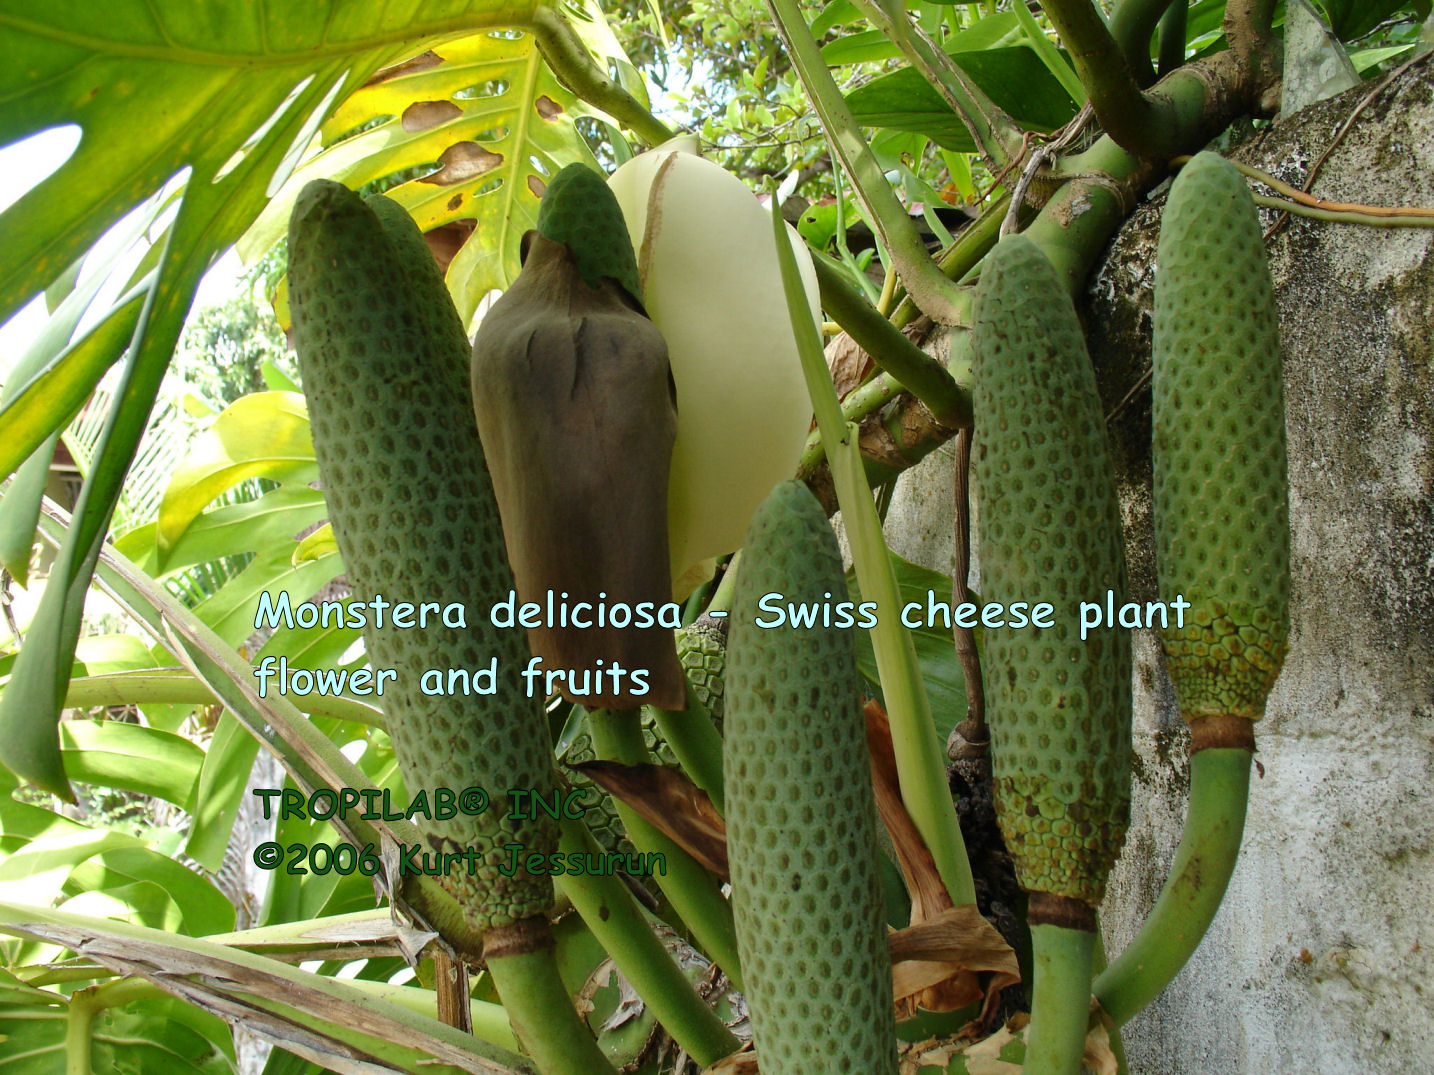 Monstera deliciosa - Swiss cheese plant flower and fruits